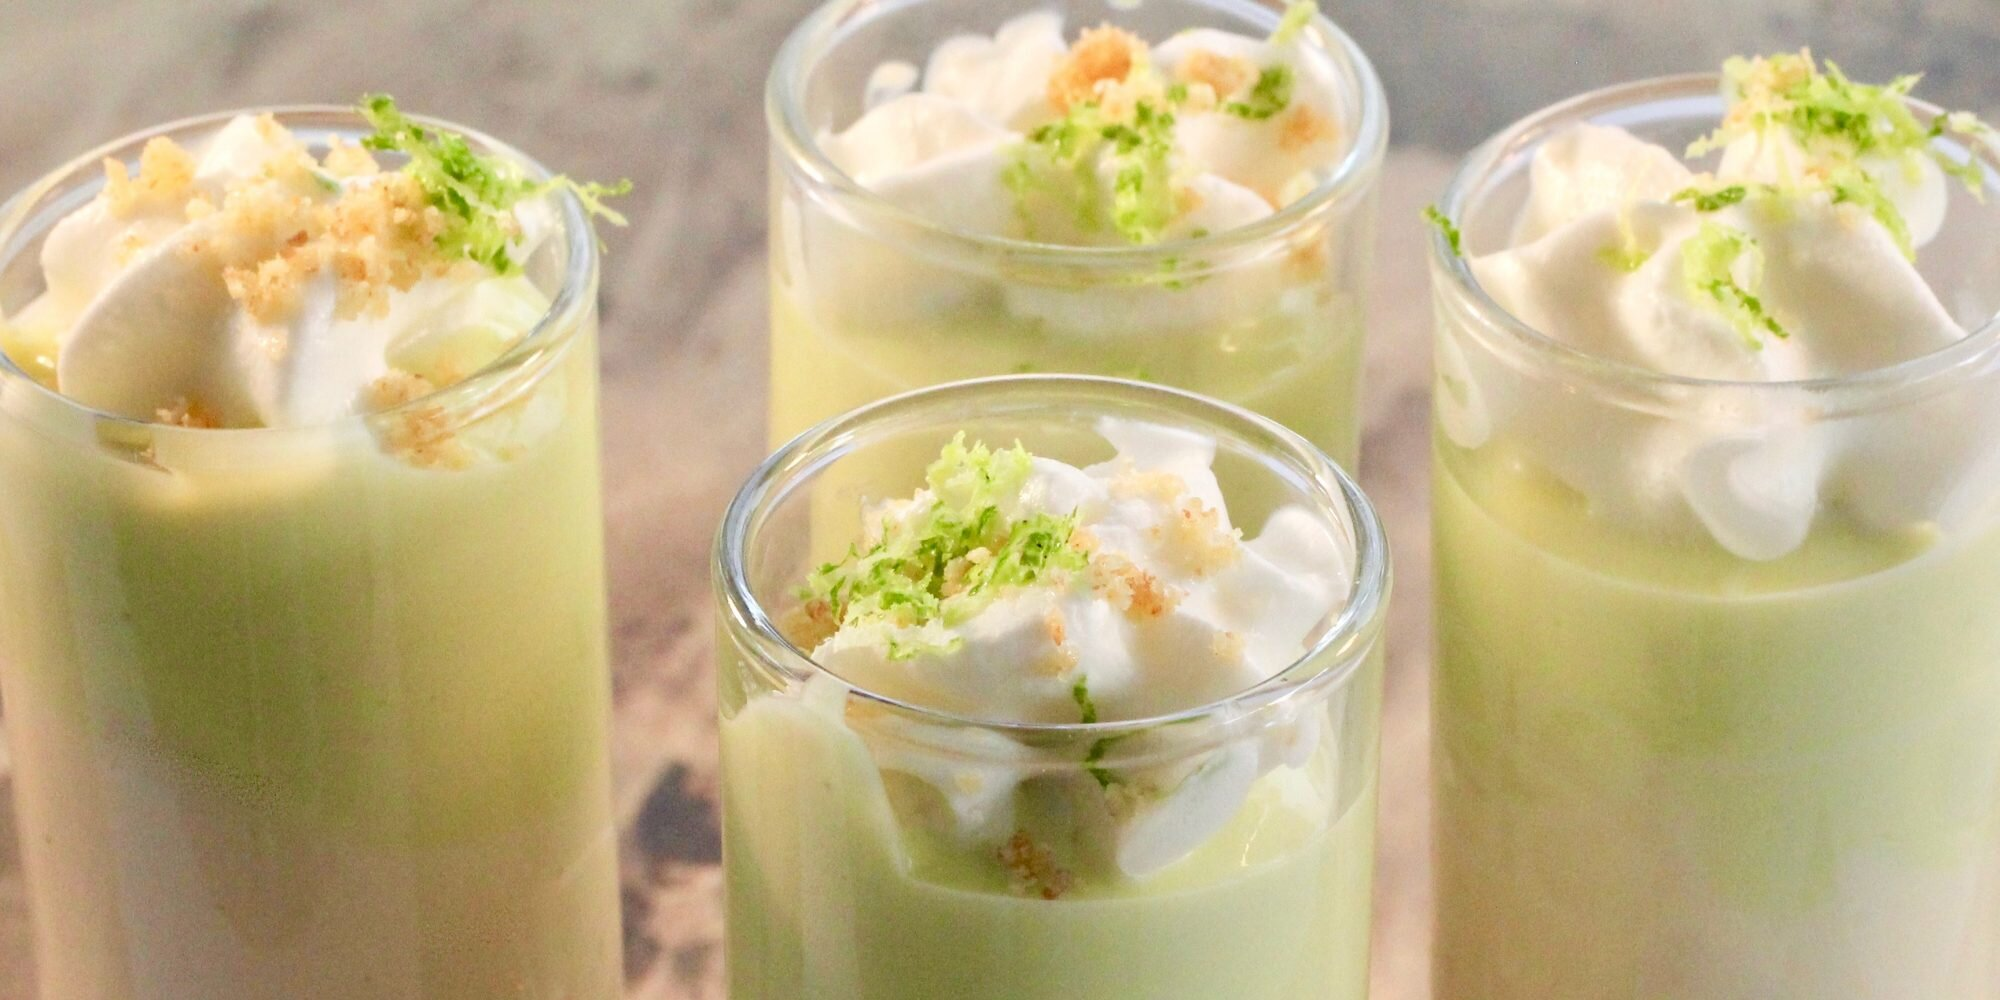 8 key lime pie inspired recipes